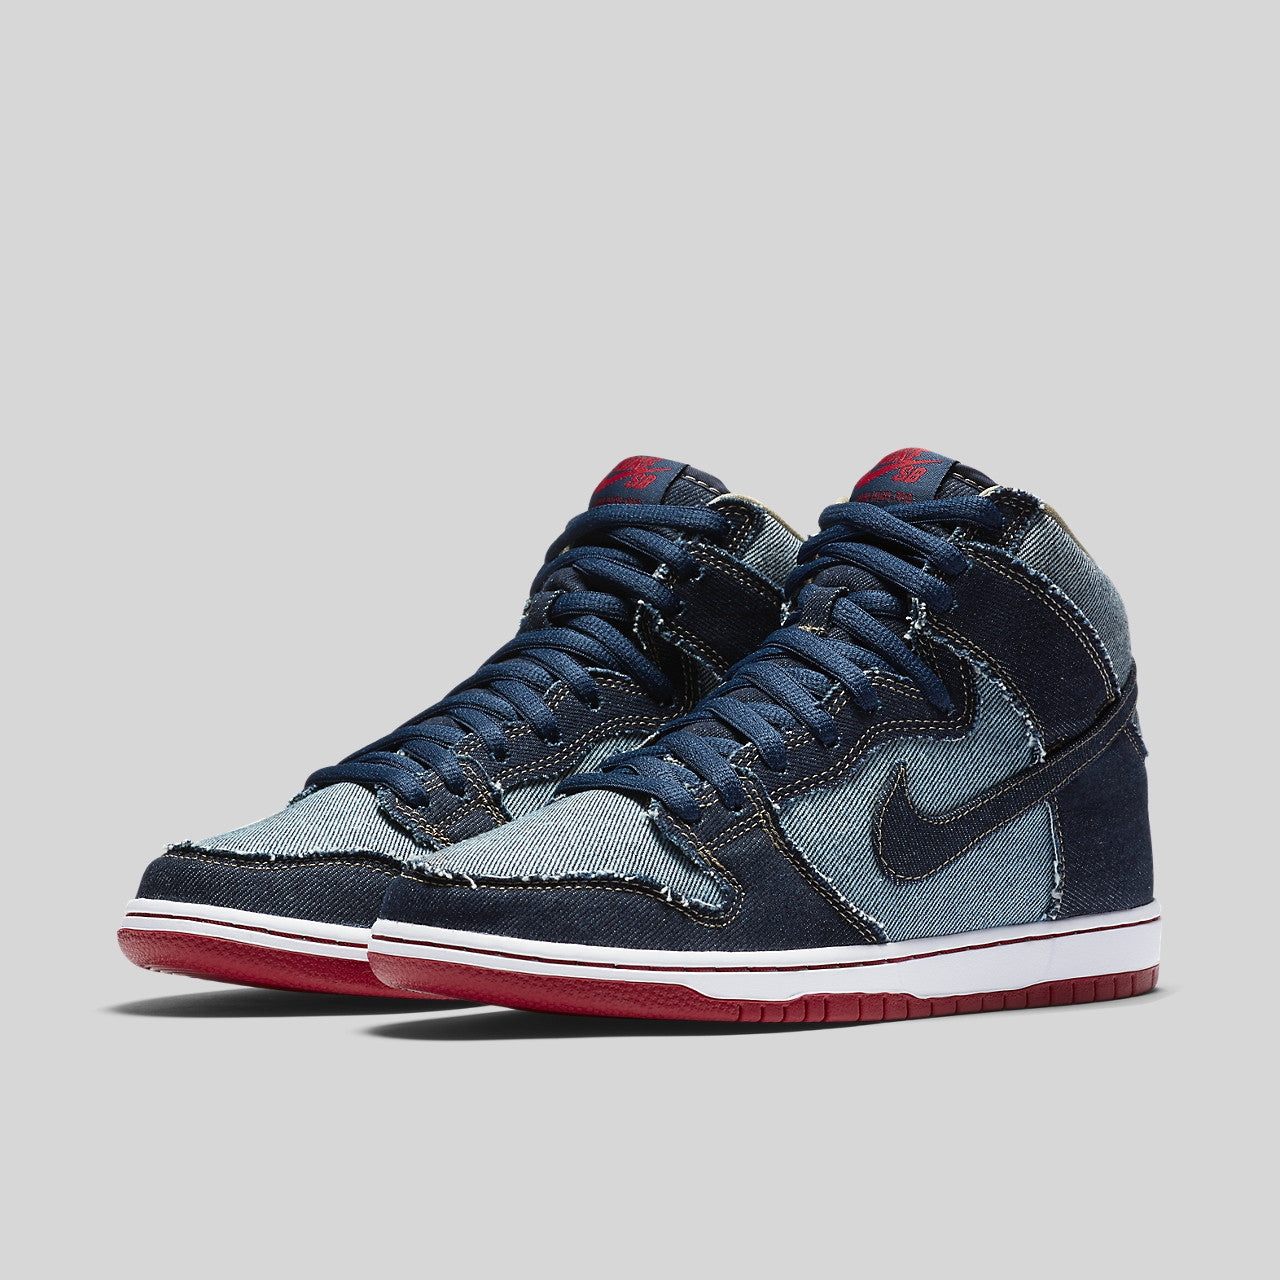 detailed pictures 112bf a3aed ... free shipping nike sb dunk high trd qs reese forbes blue denim b65dd  7792e